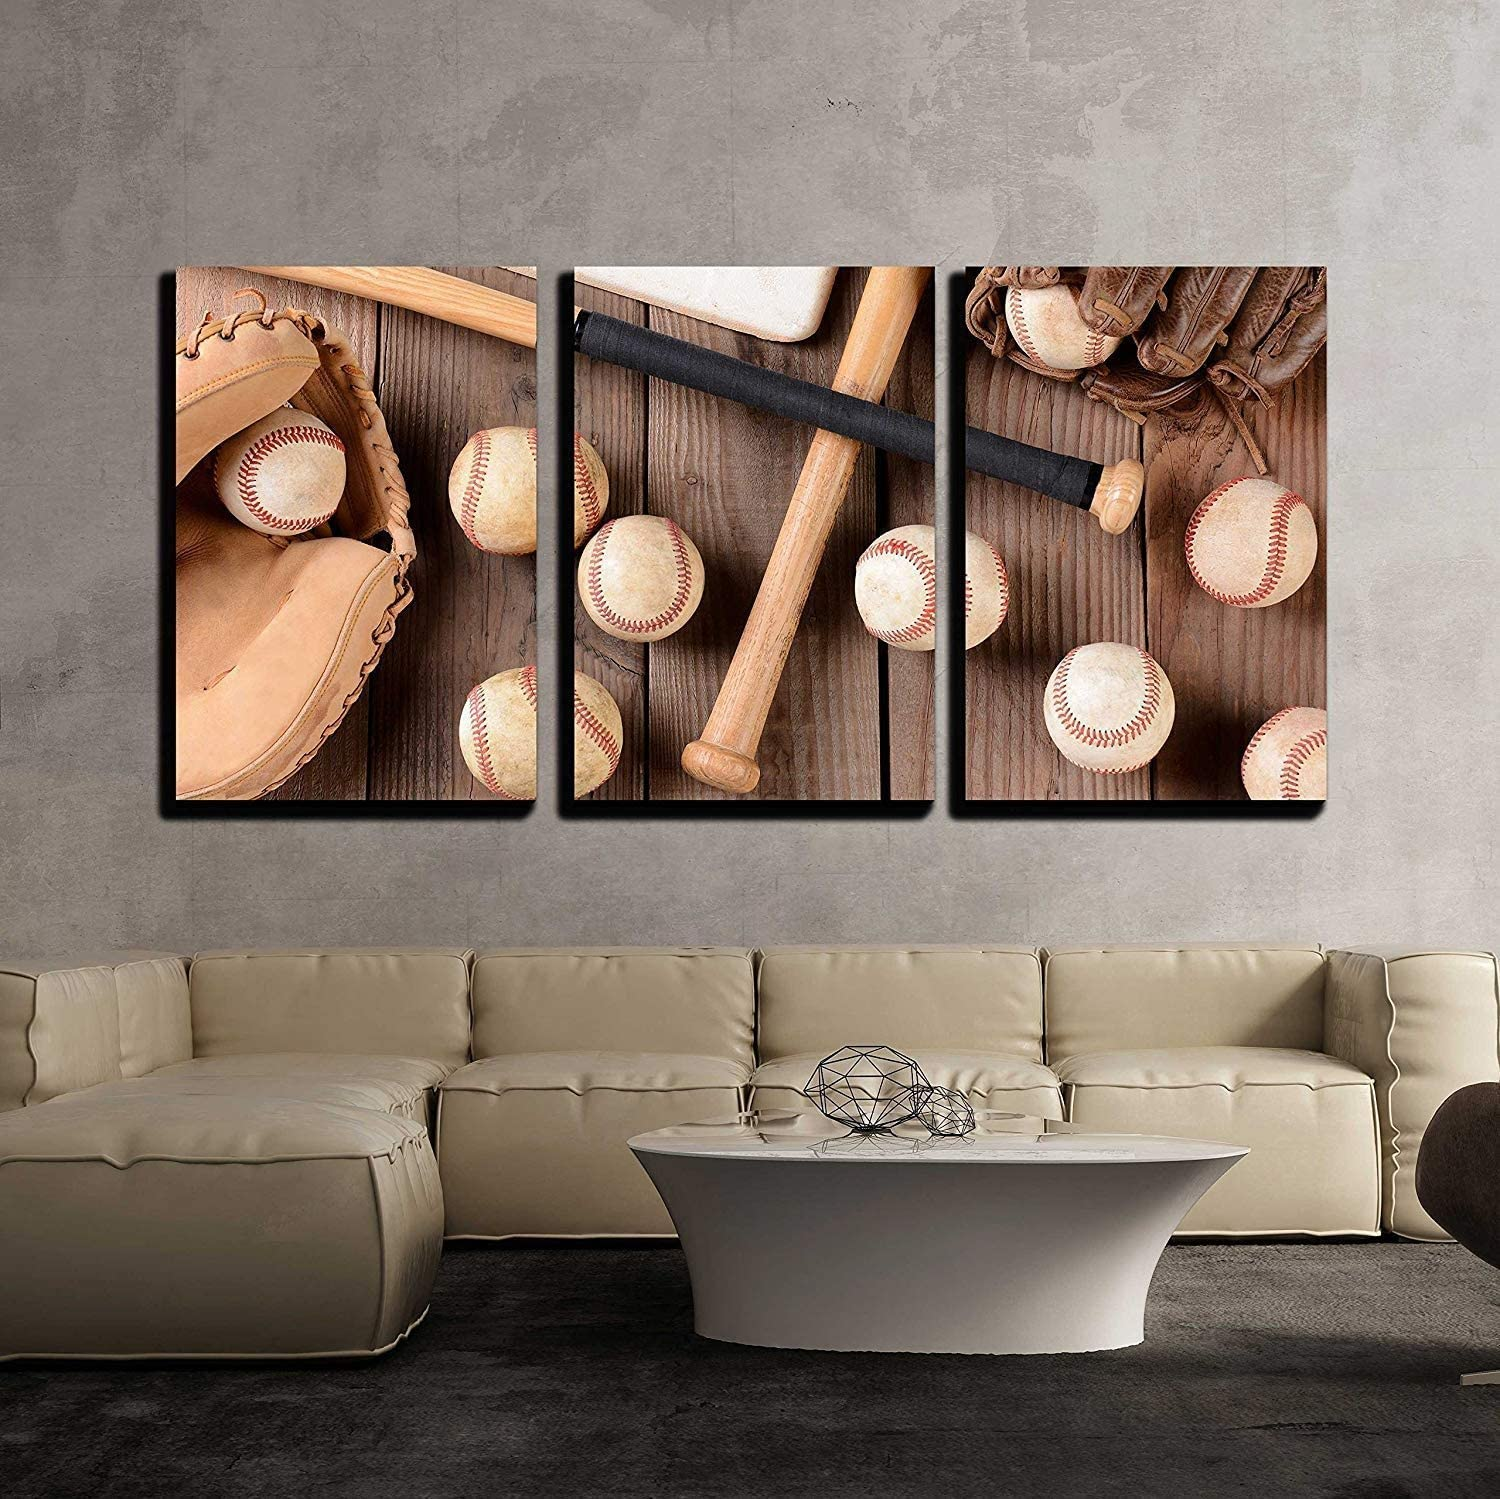 "wall26 - 3 Piece Canvas Wall Art - Baseball Equipment on a Rustic Wood Surface - Modern Home Art Stretched and Framed Ready to Hang - 16""x24""x3 Panels"